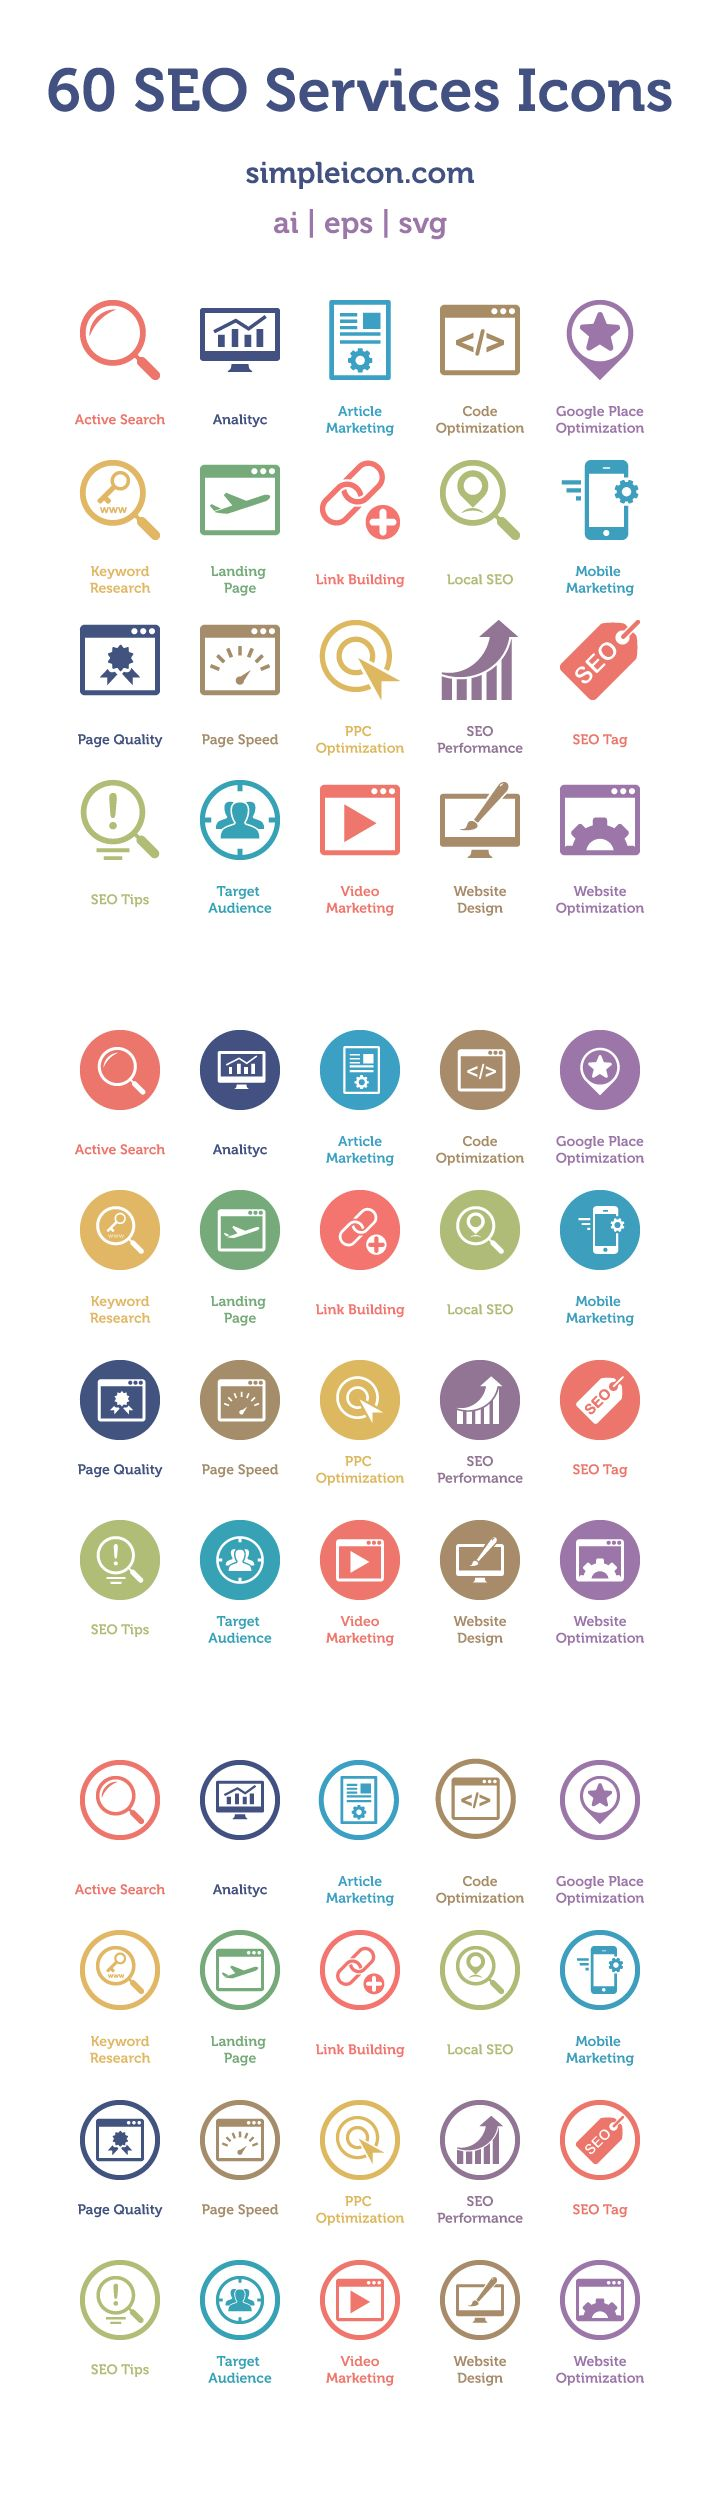 60 Free SEO Services Icons